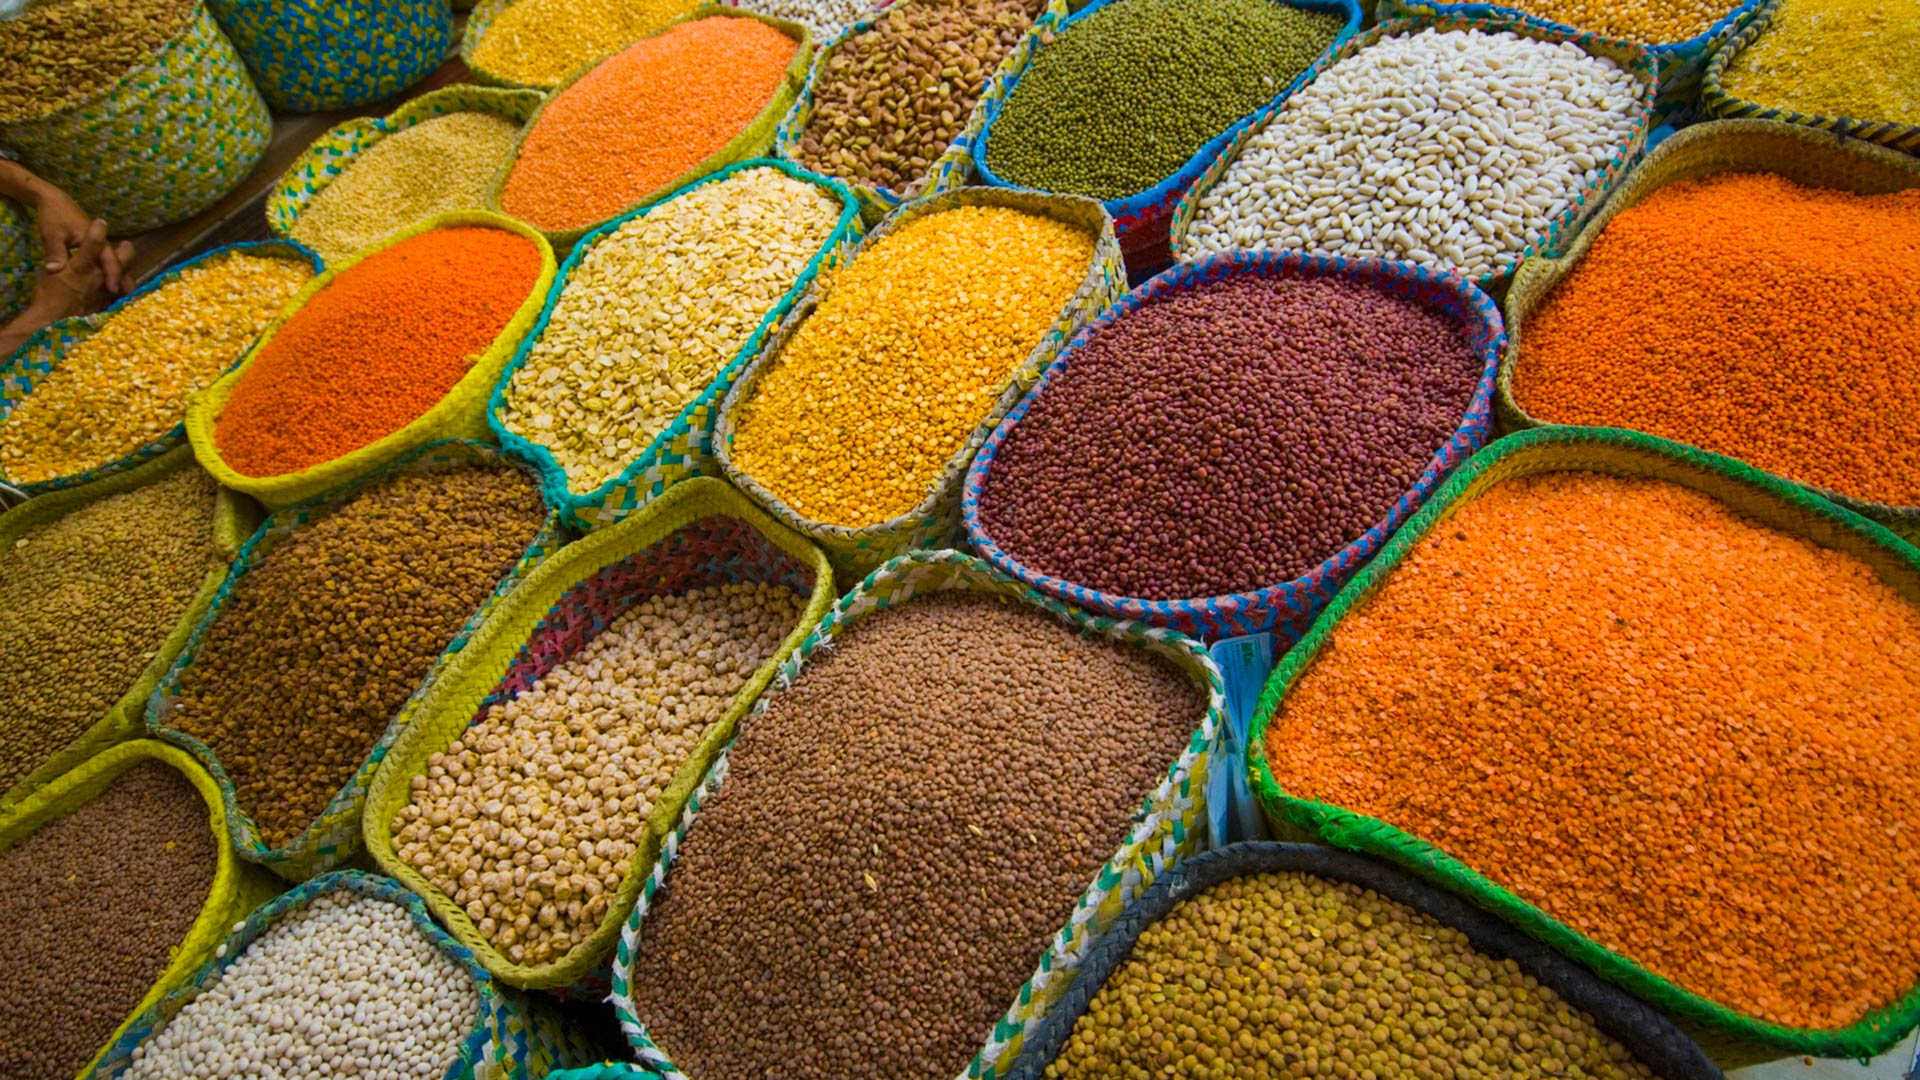 Spice and other foods in a souk in Jeddah, Saudi Arabia